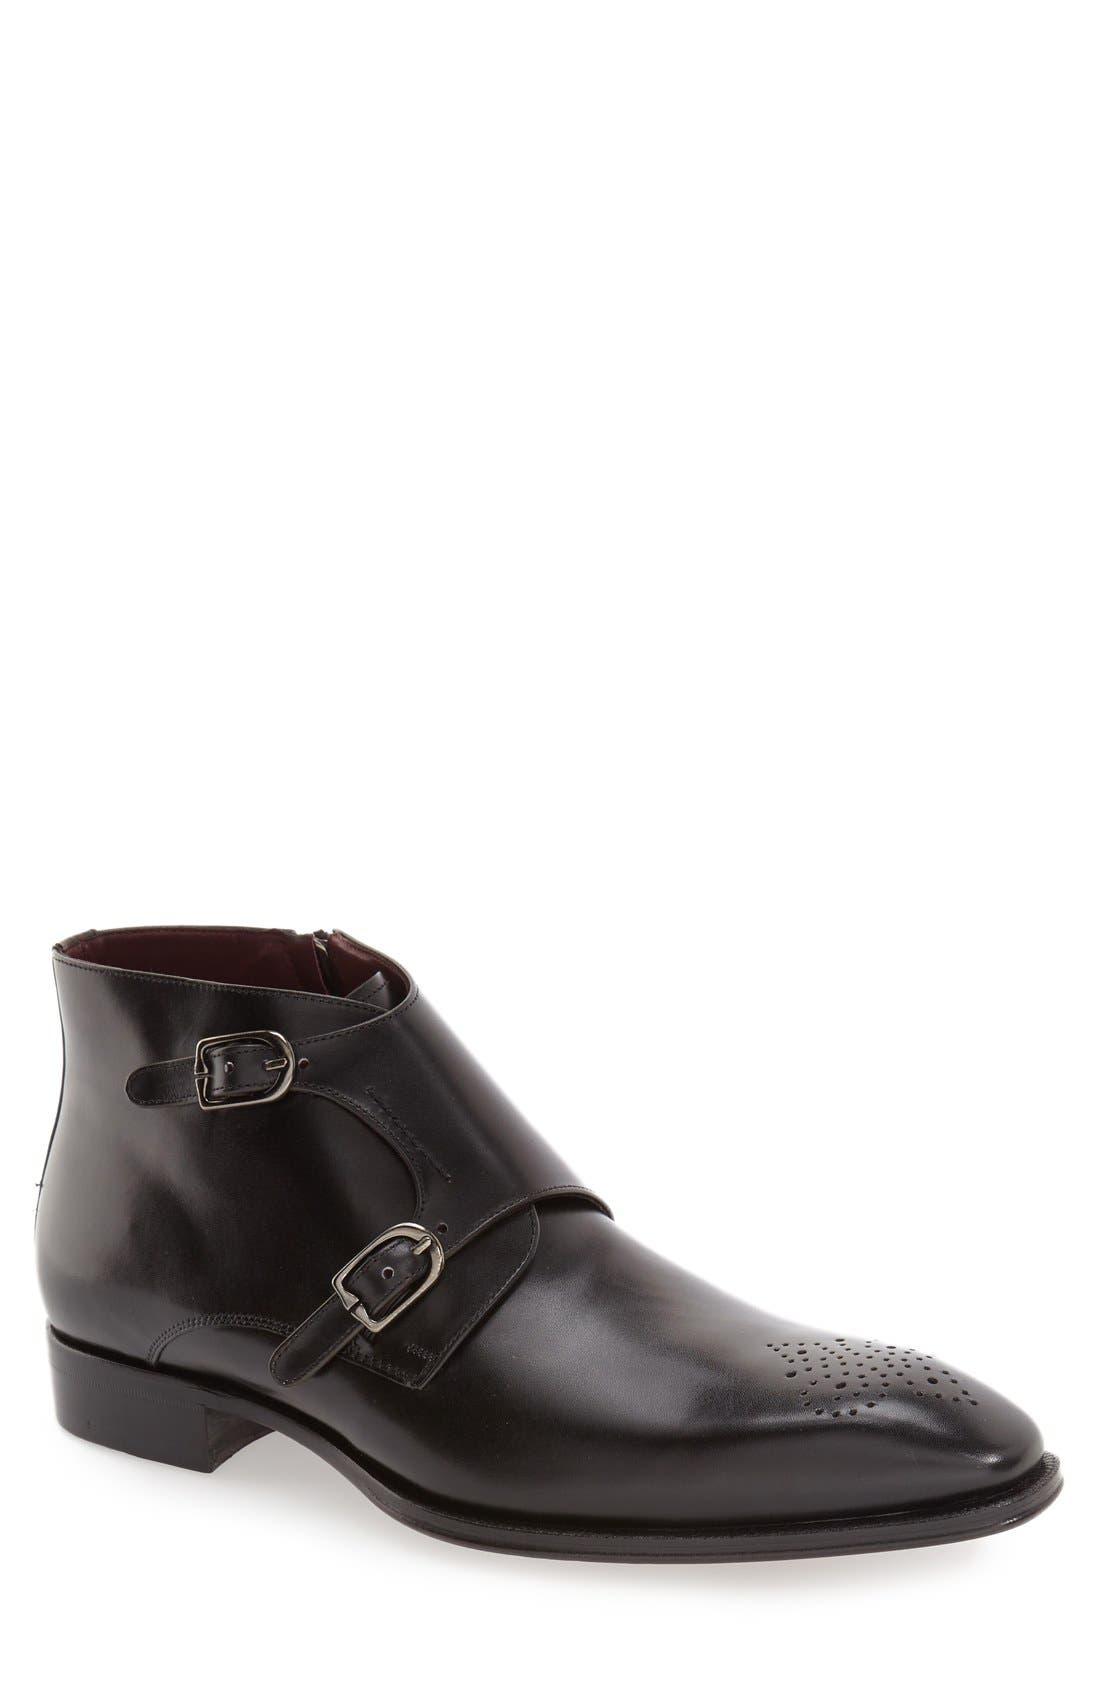 'Rocca' Midi Double Monk Strap Boot,                             Main thumbnail 1, color,                             001